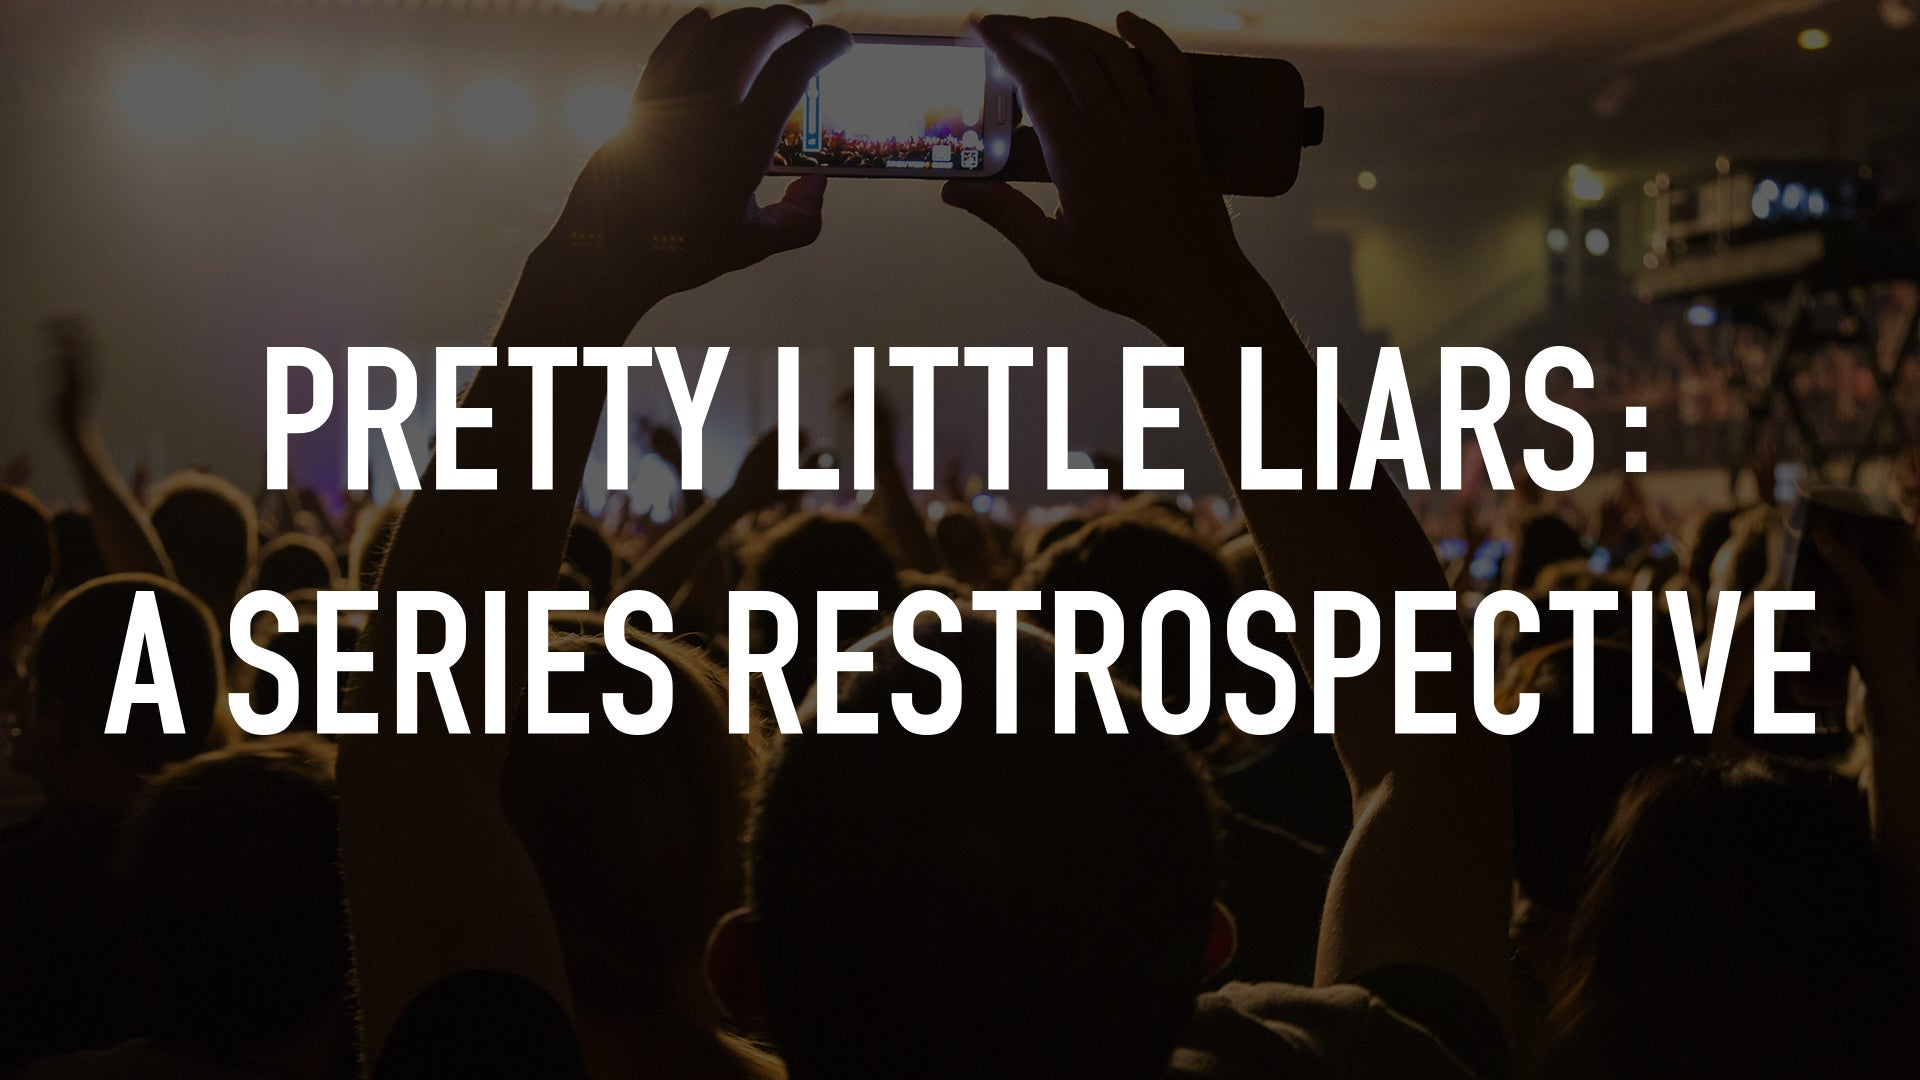 Pretty Little Liars: A Series Restrospective